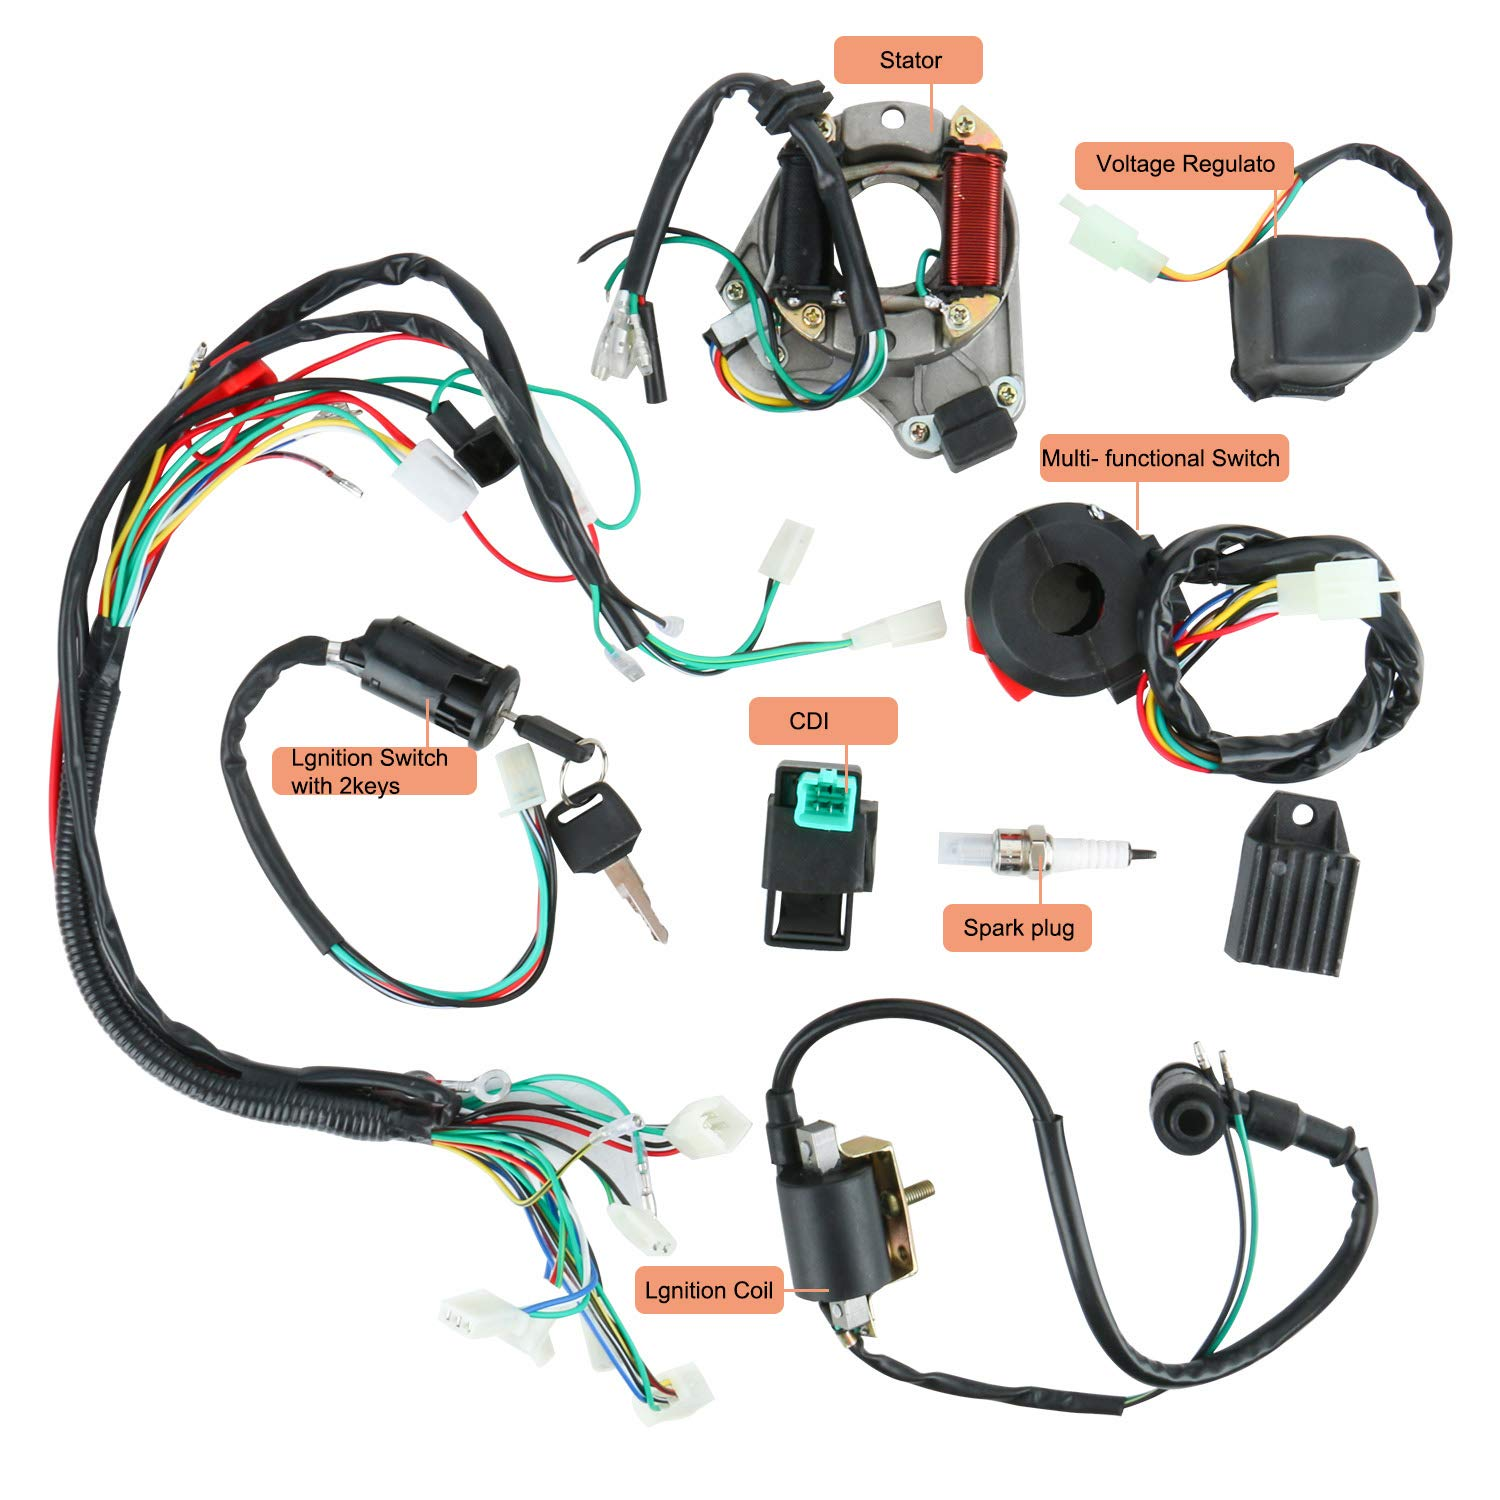 YaeGarden Complete Electrics Stator Coil CDI Wiring Harness Kit CDI Wire  Assembly for 4 Stroke ATV KLX 50cc 70cc 110cc 125cc Quad Bike Buggy Go Kart  - Walmart.com - Walmart.comWalmart